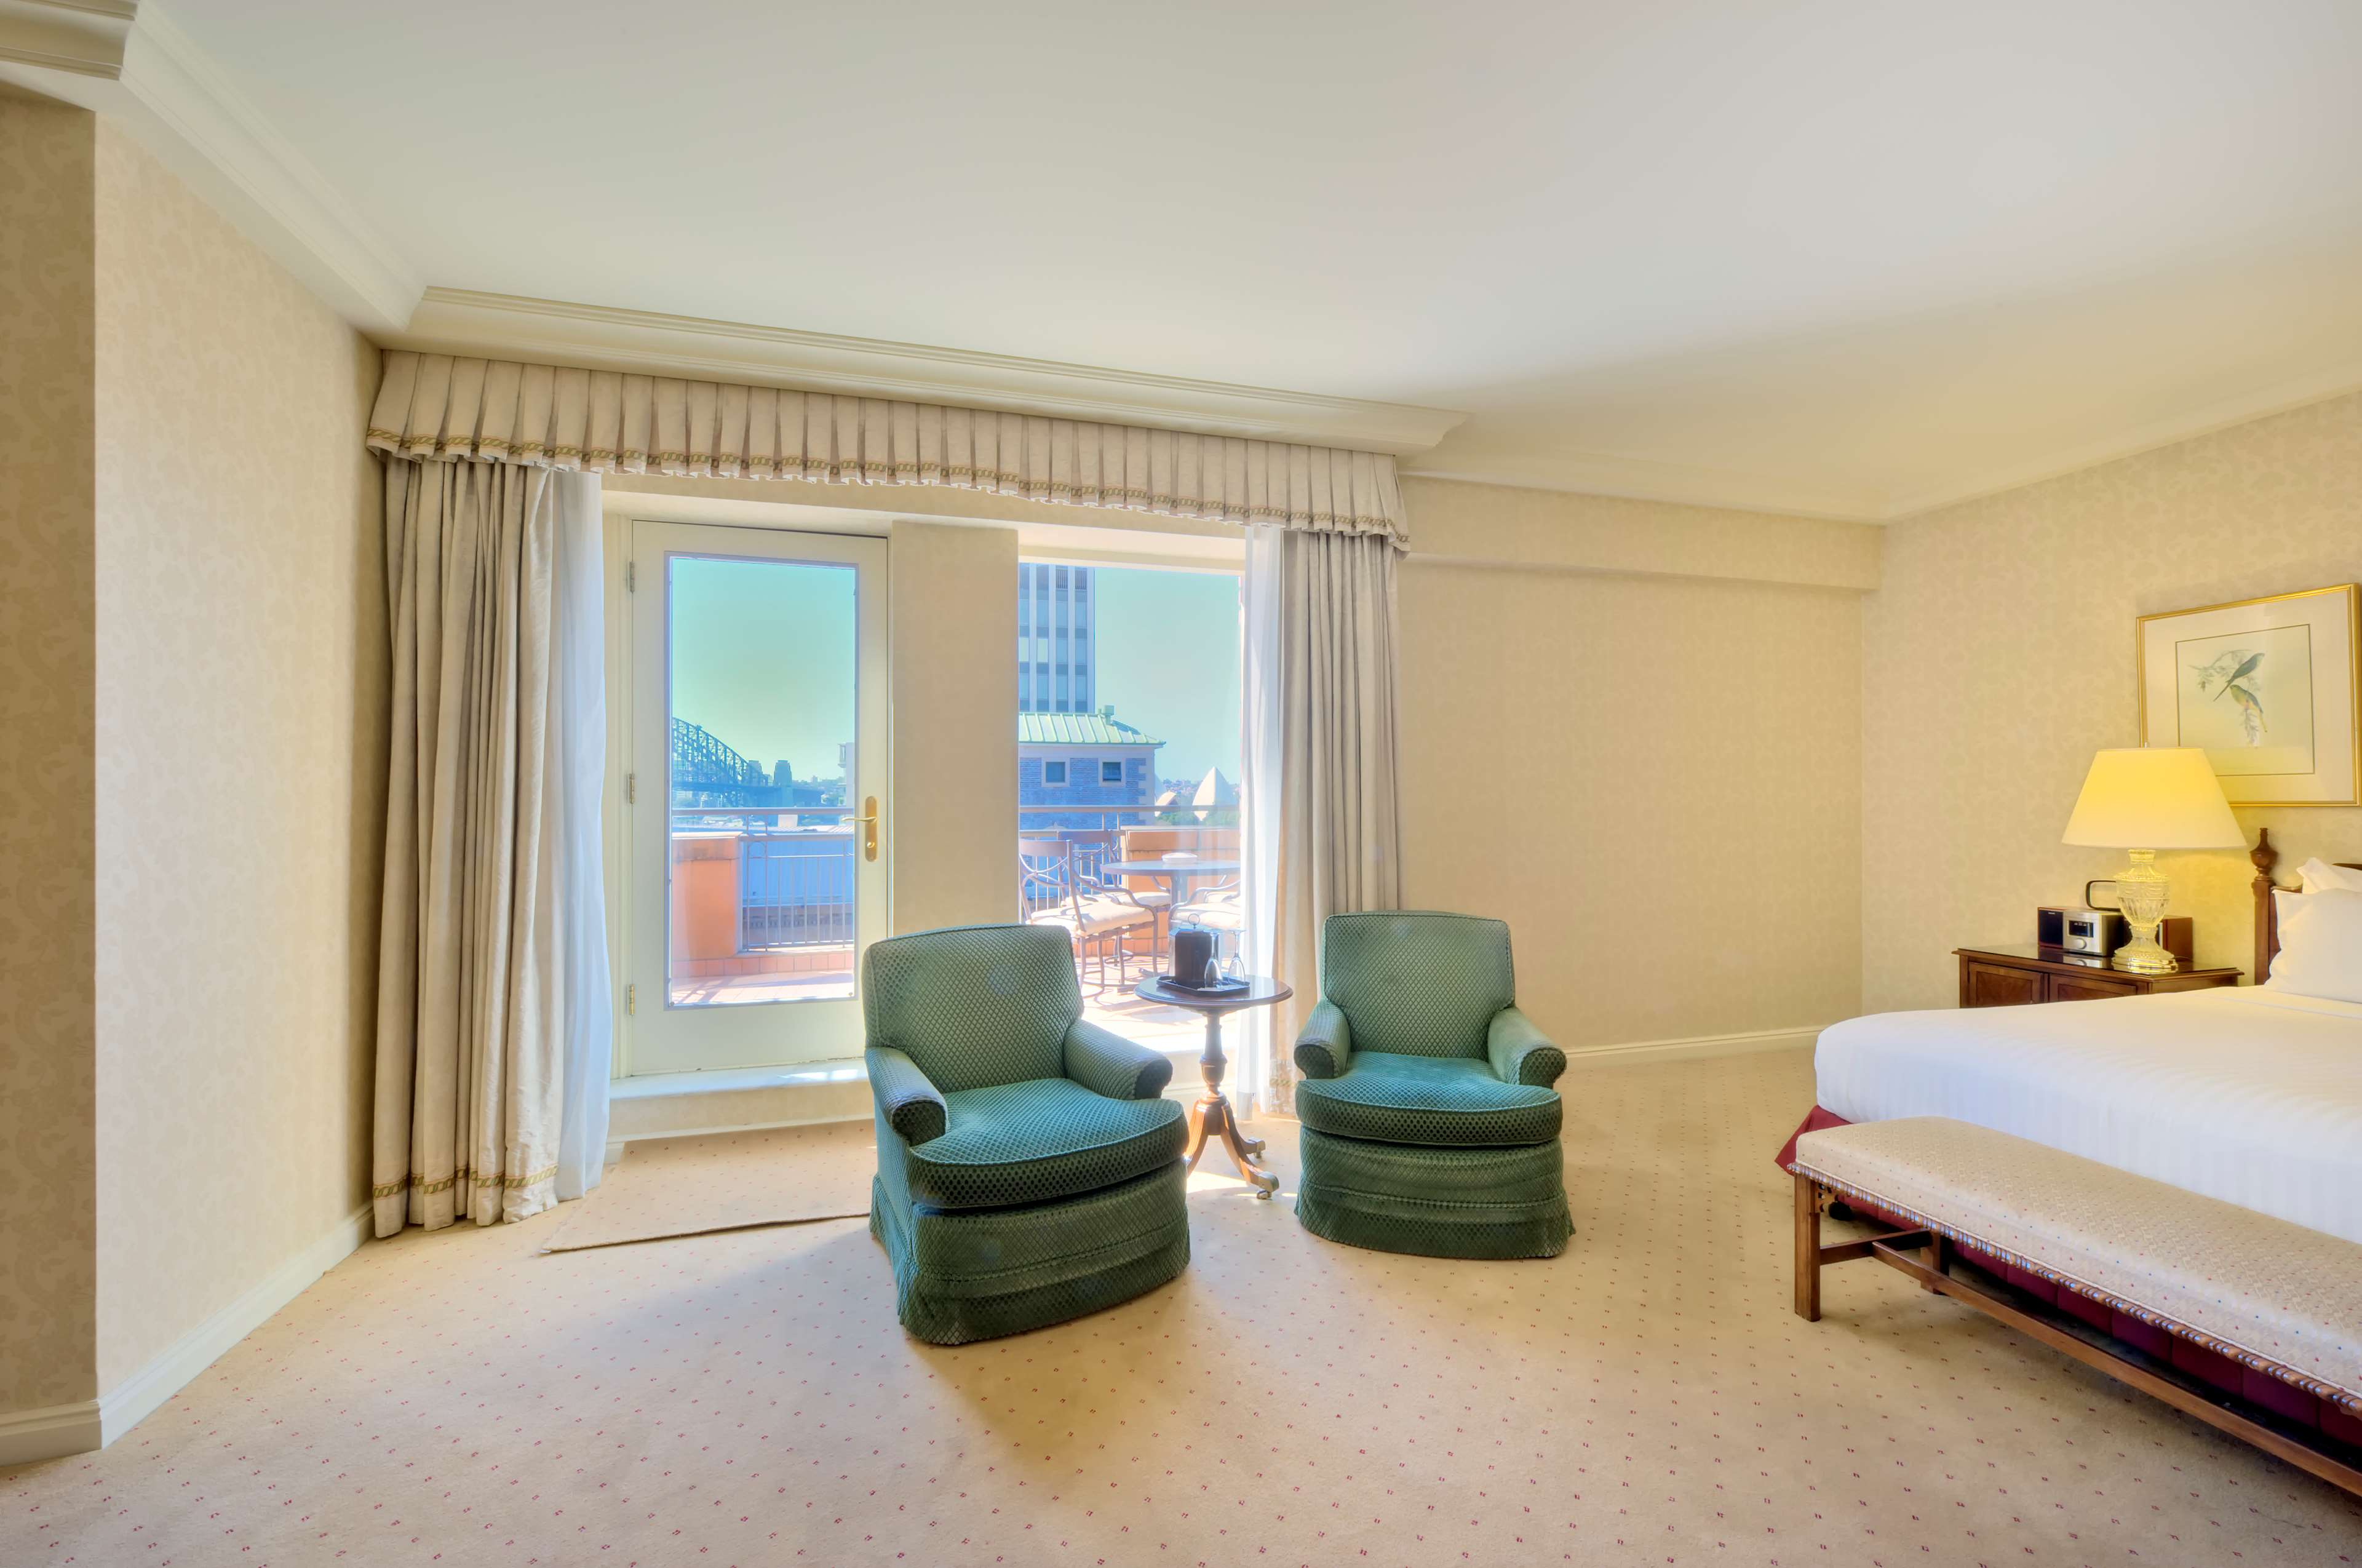 Deluxe Terrace King Room at Sir Stamford at Circular Quay